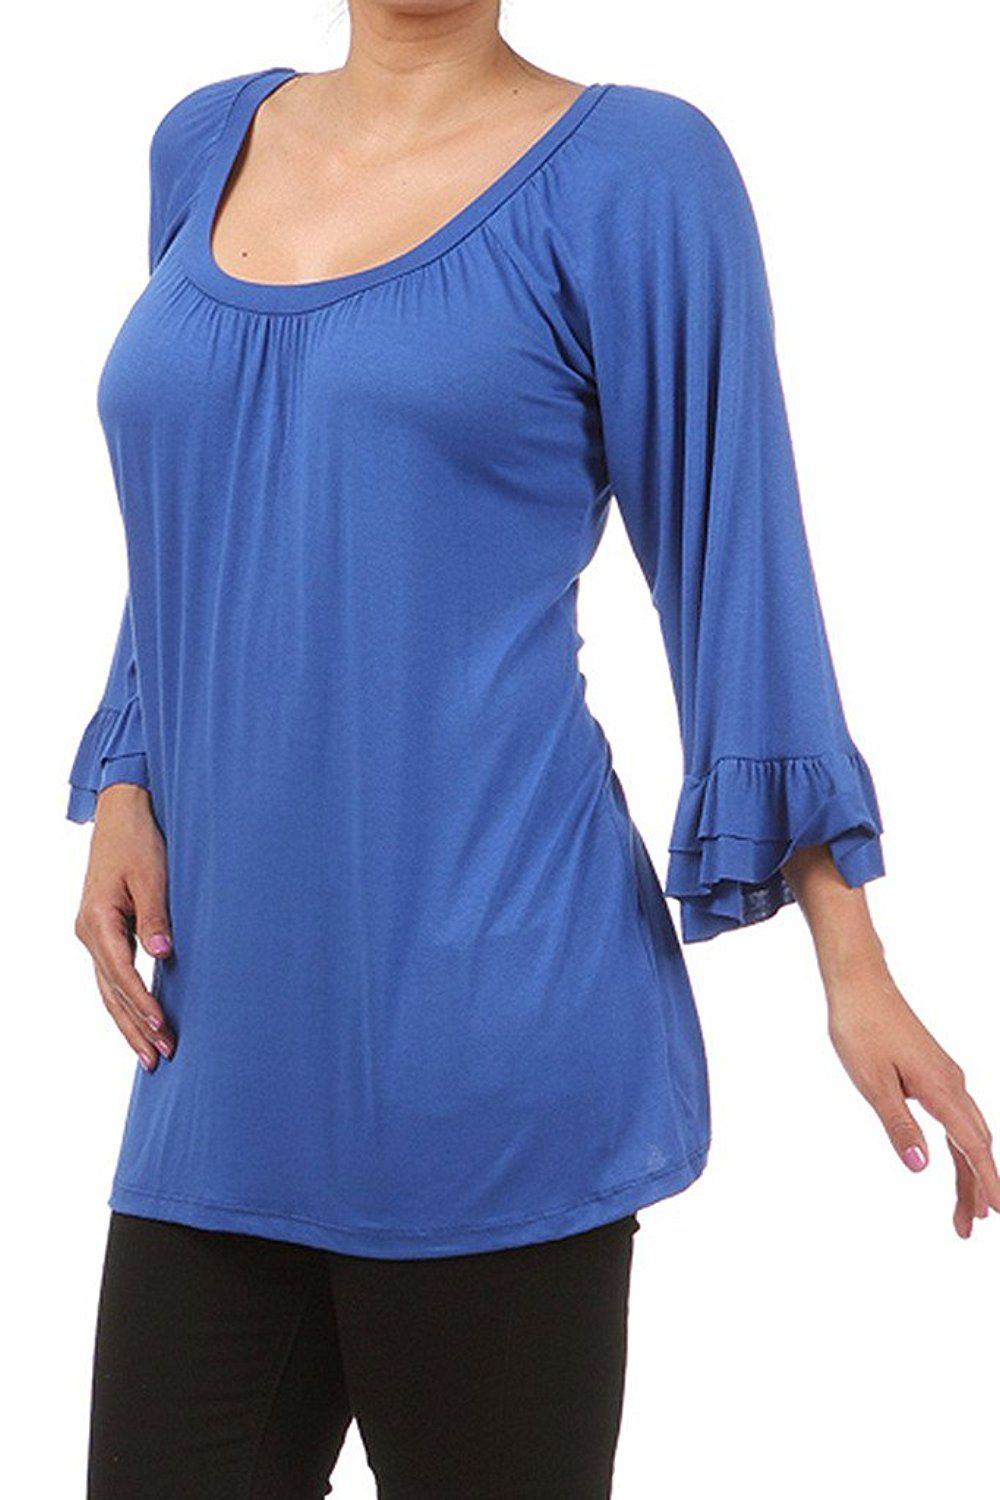 Vintage teestube womens plus size casual loose fit ruffle tunic top with bell sleeves